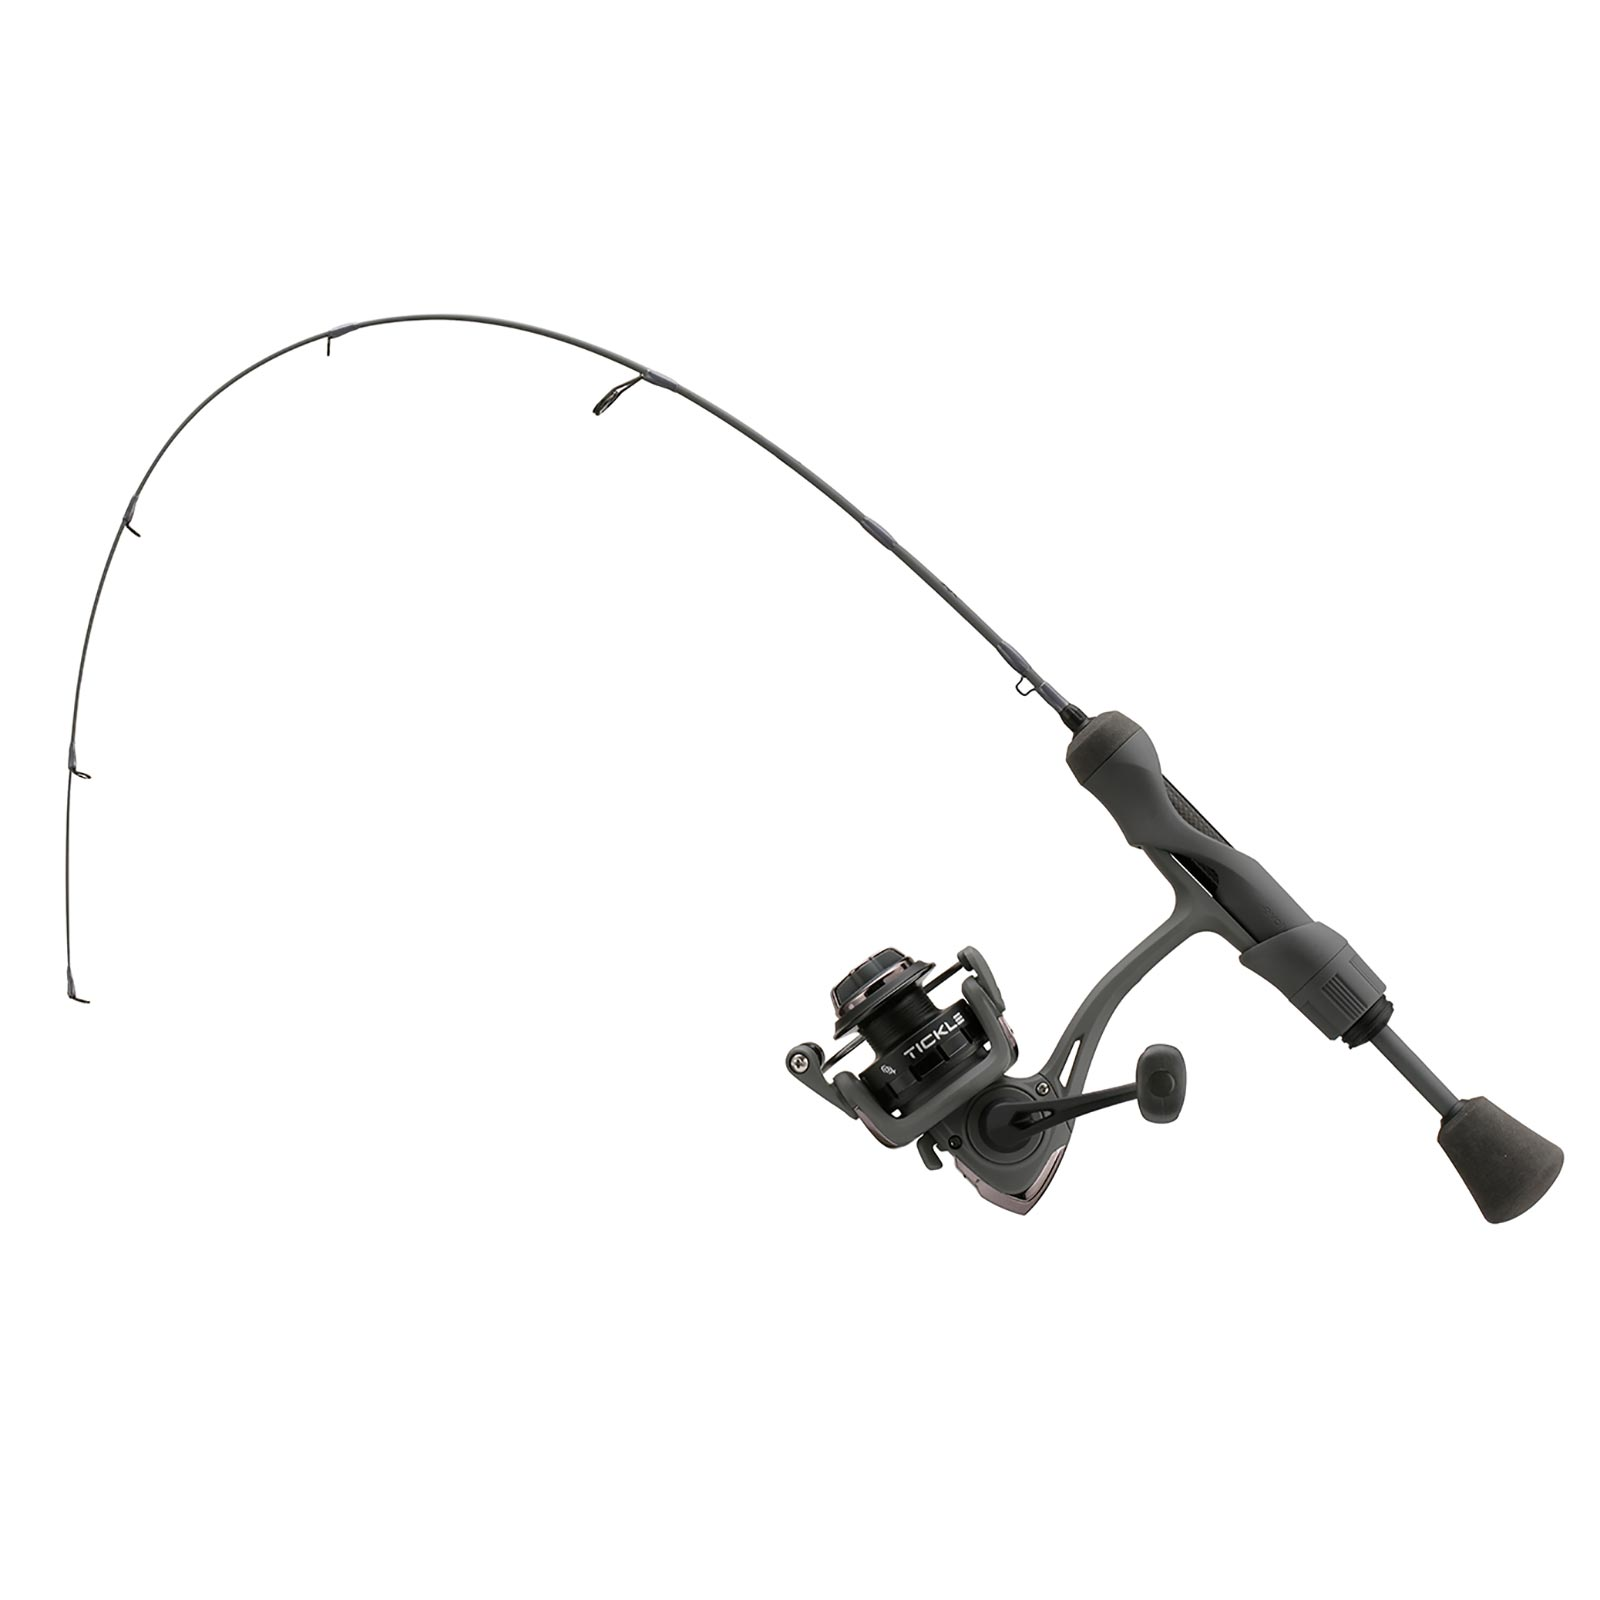 13 Fishing Wicked Stealth Edition Ice Spinning Combo In Use